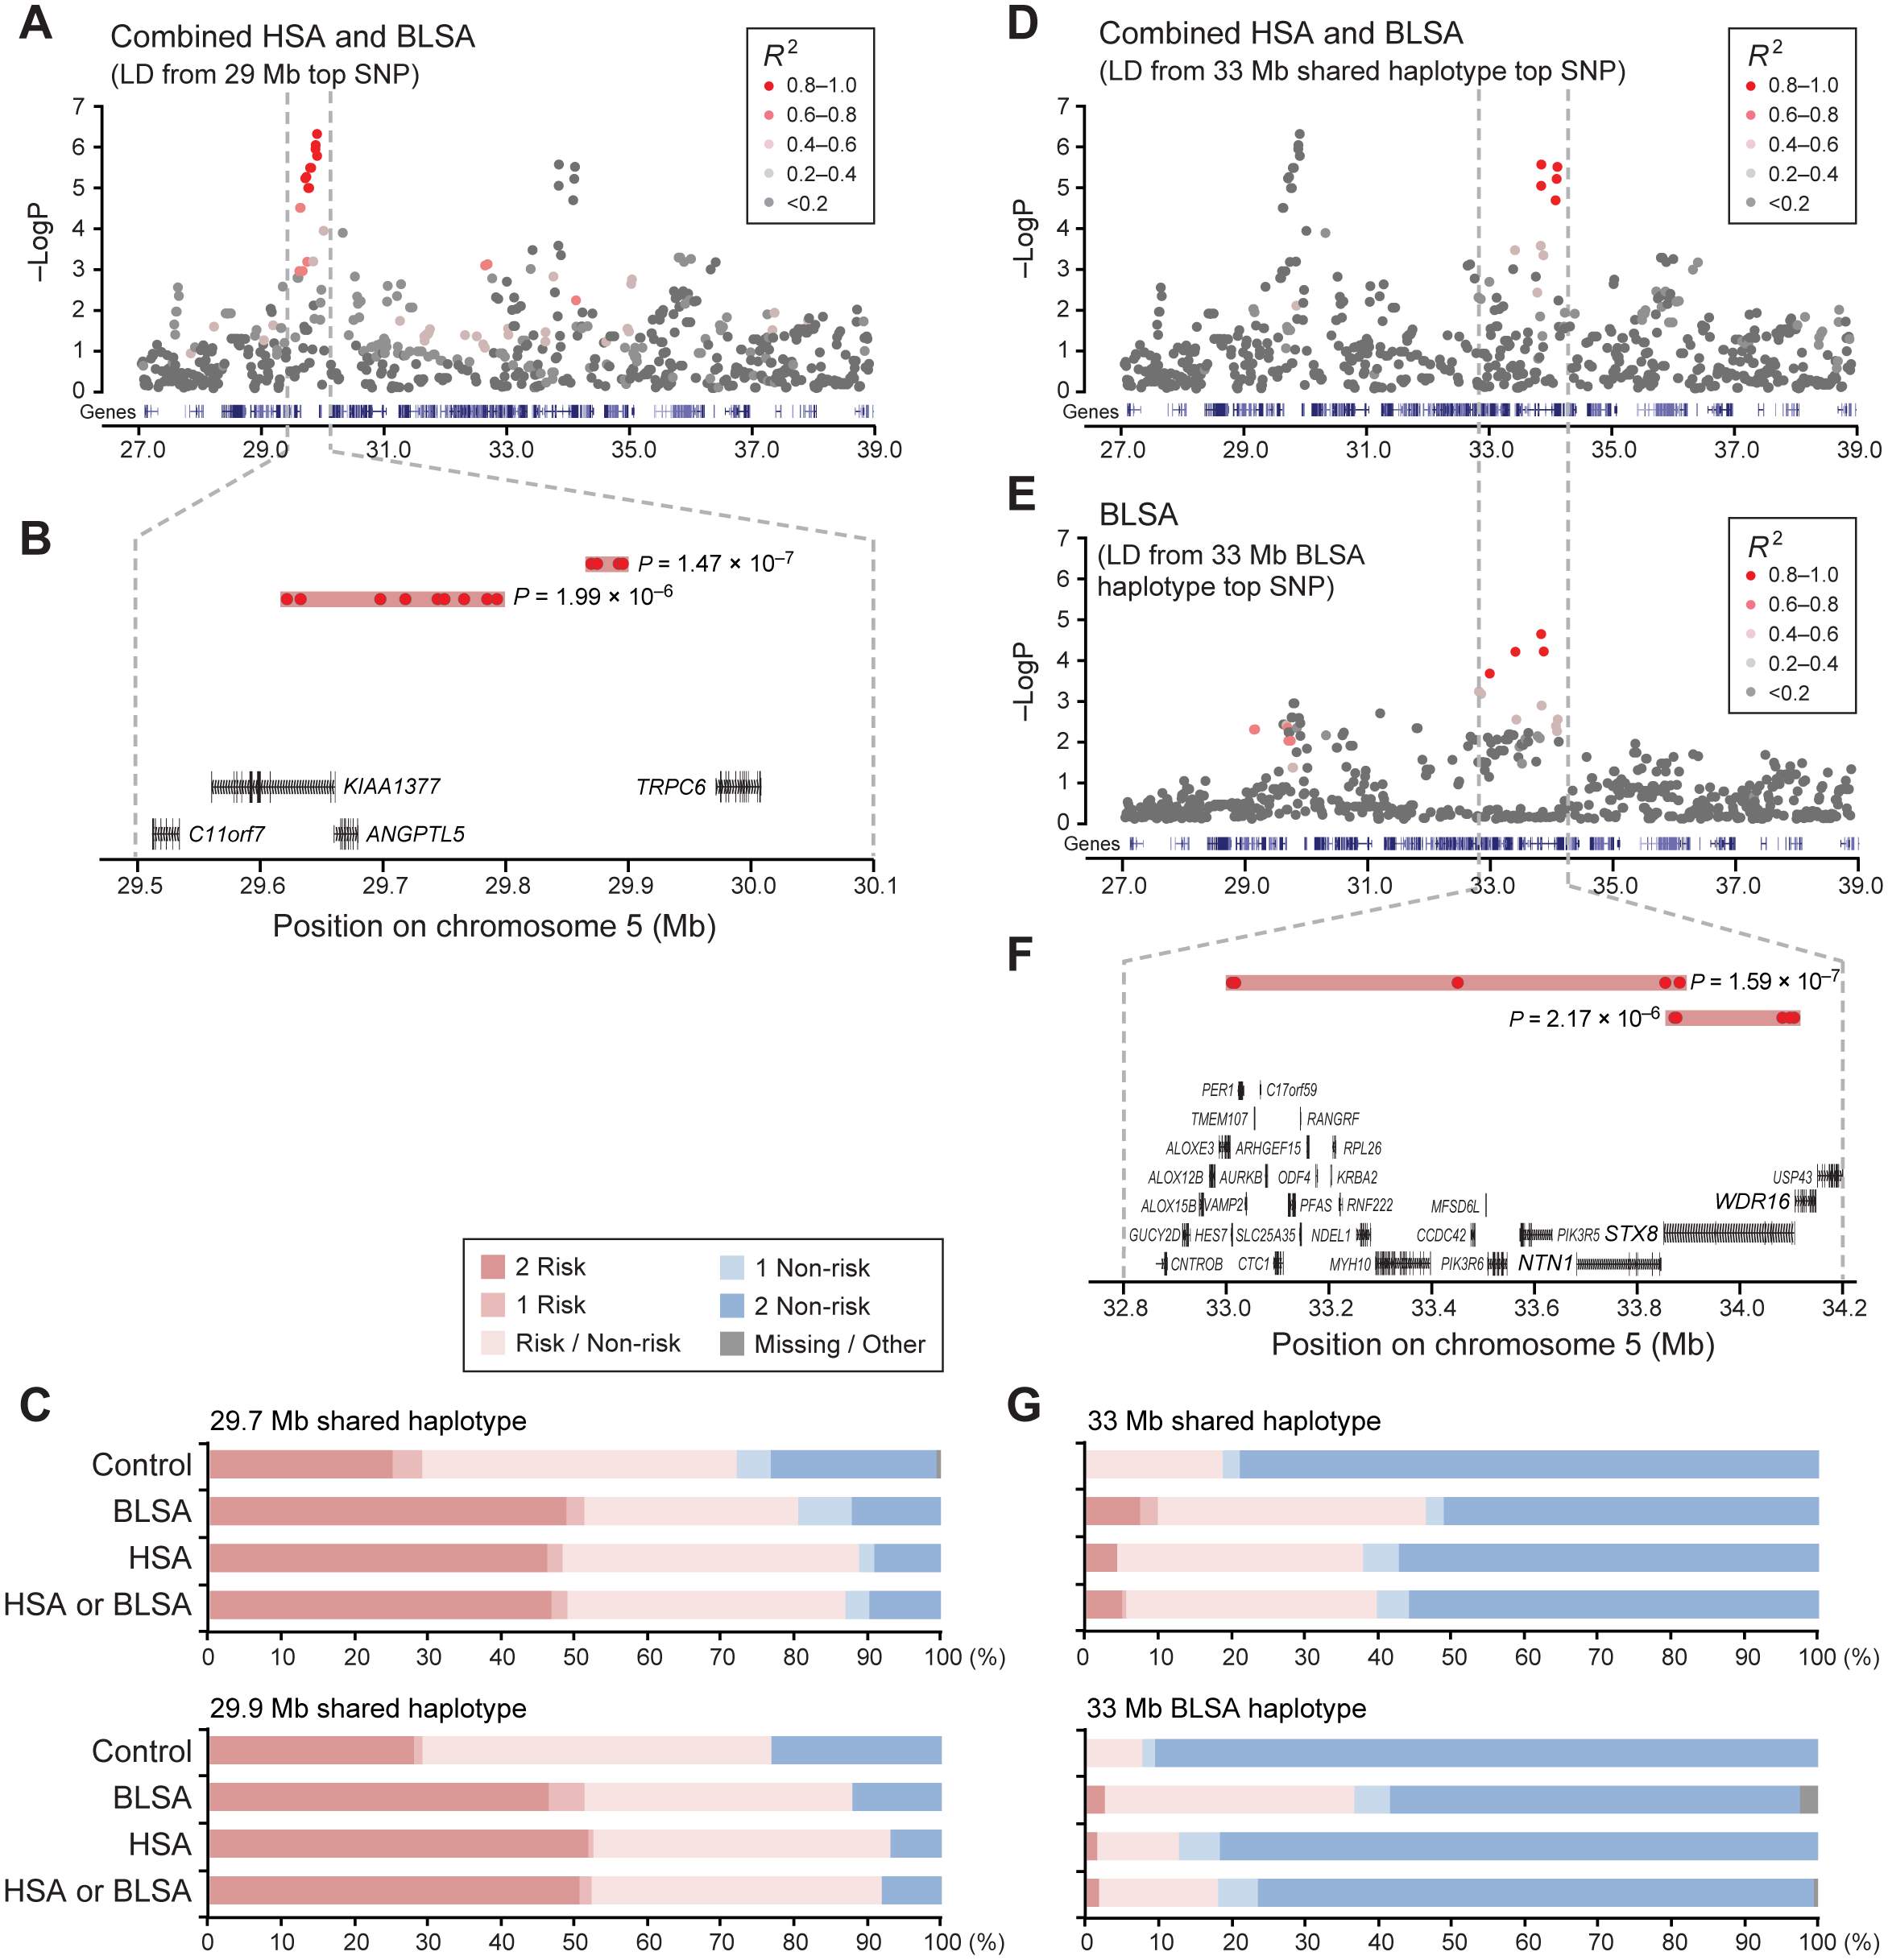 Two neighboring loci on chromosome 5 are independently associated with disease risk.